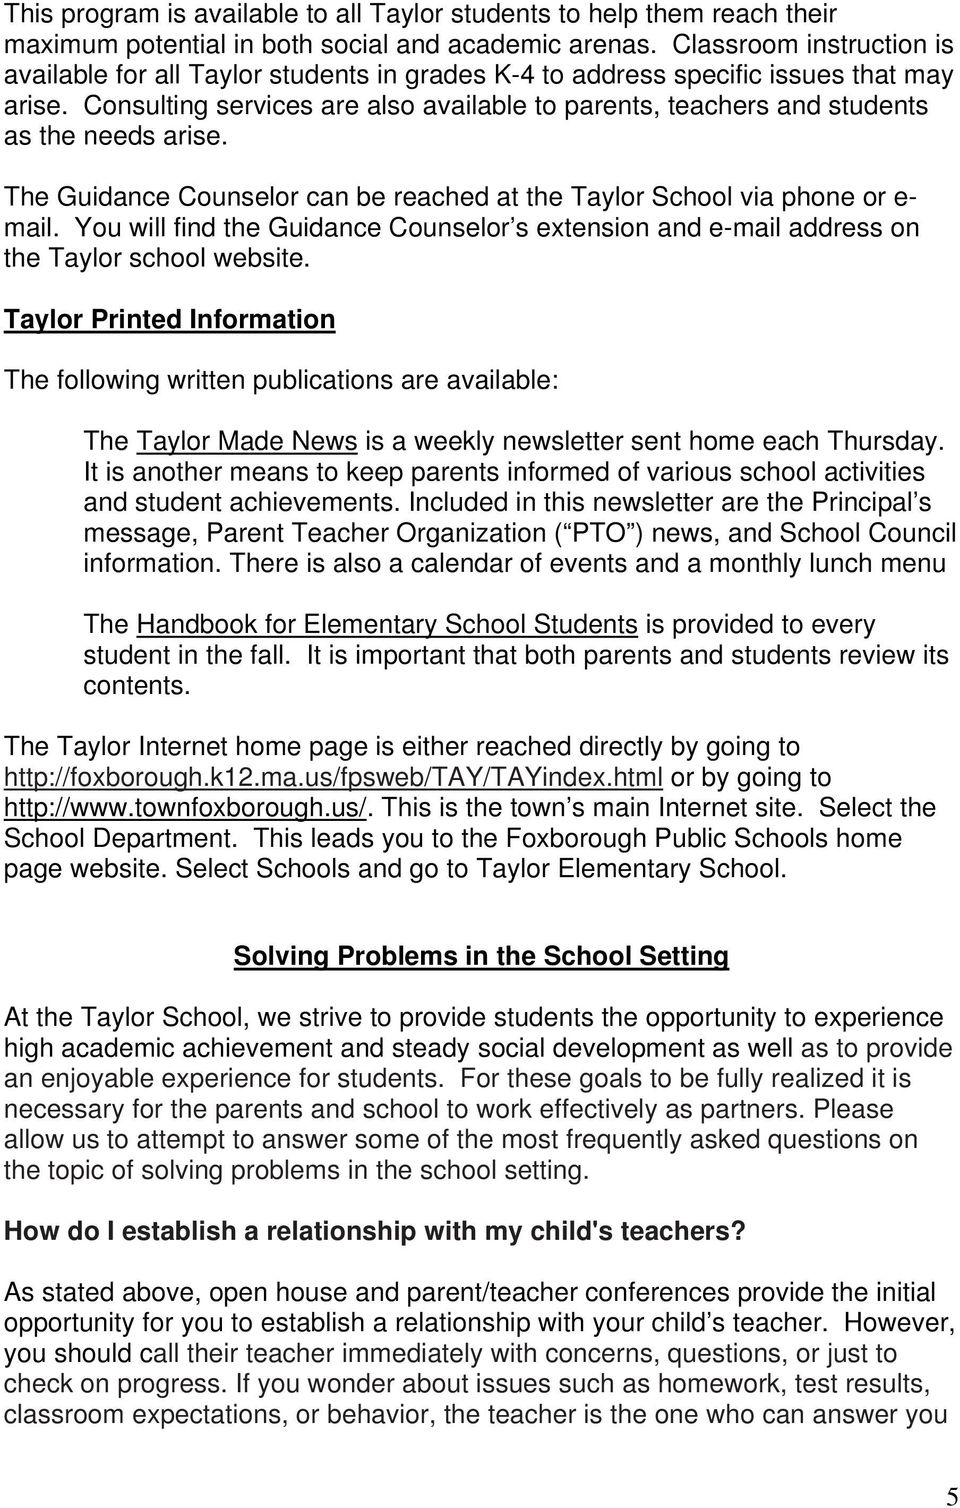 Consulting services are also available to parents, teachers and students as the needs arise. The Guidance Counselor can be reached at the Taylor School via phone or e- mail.